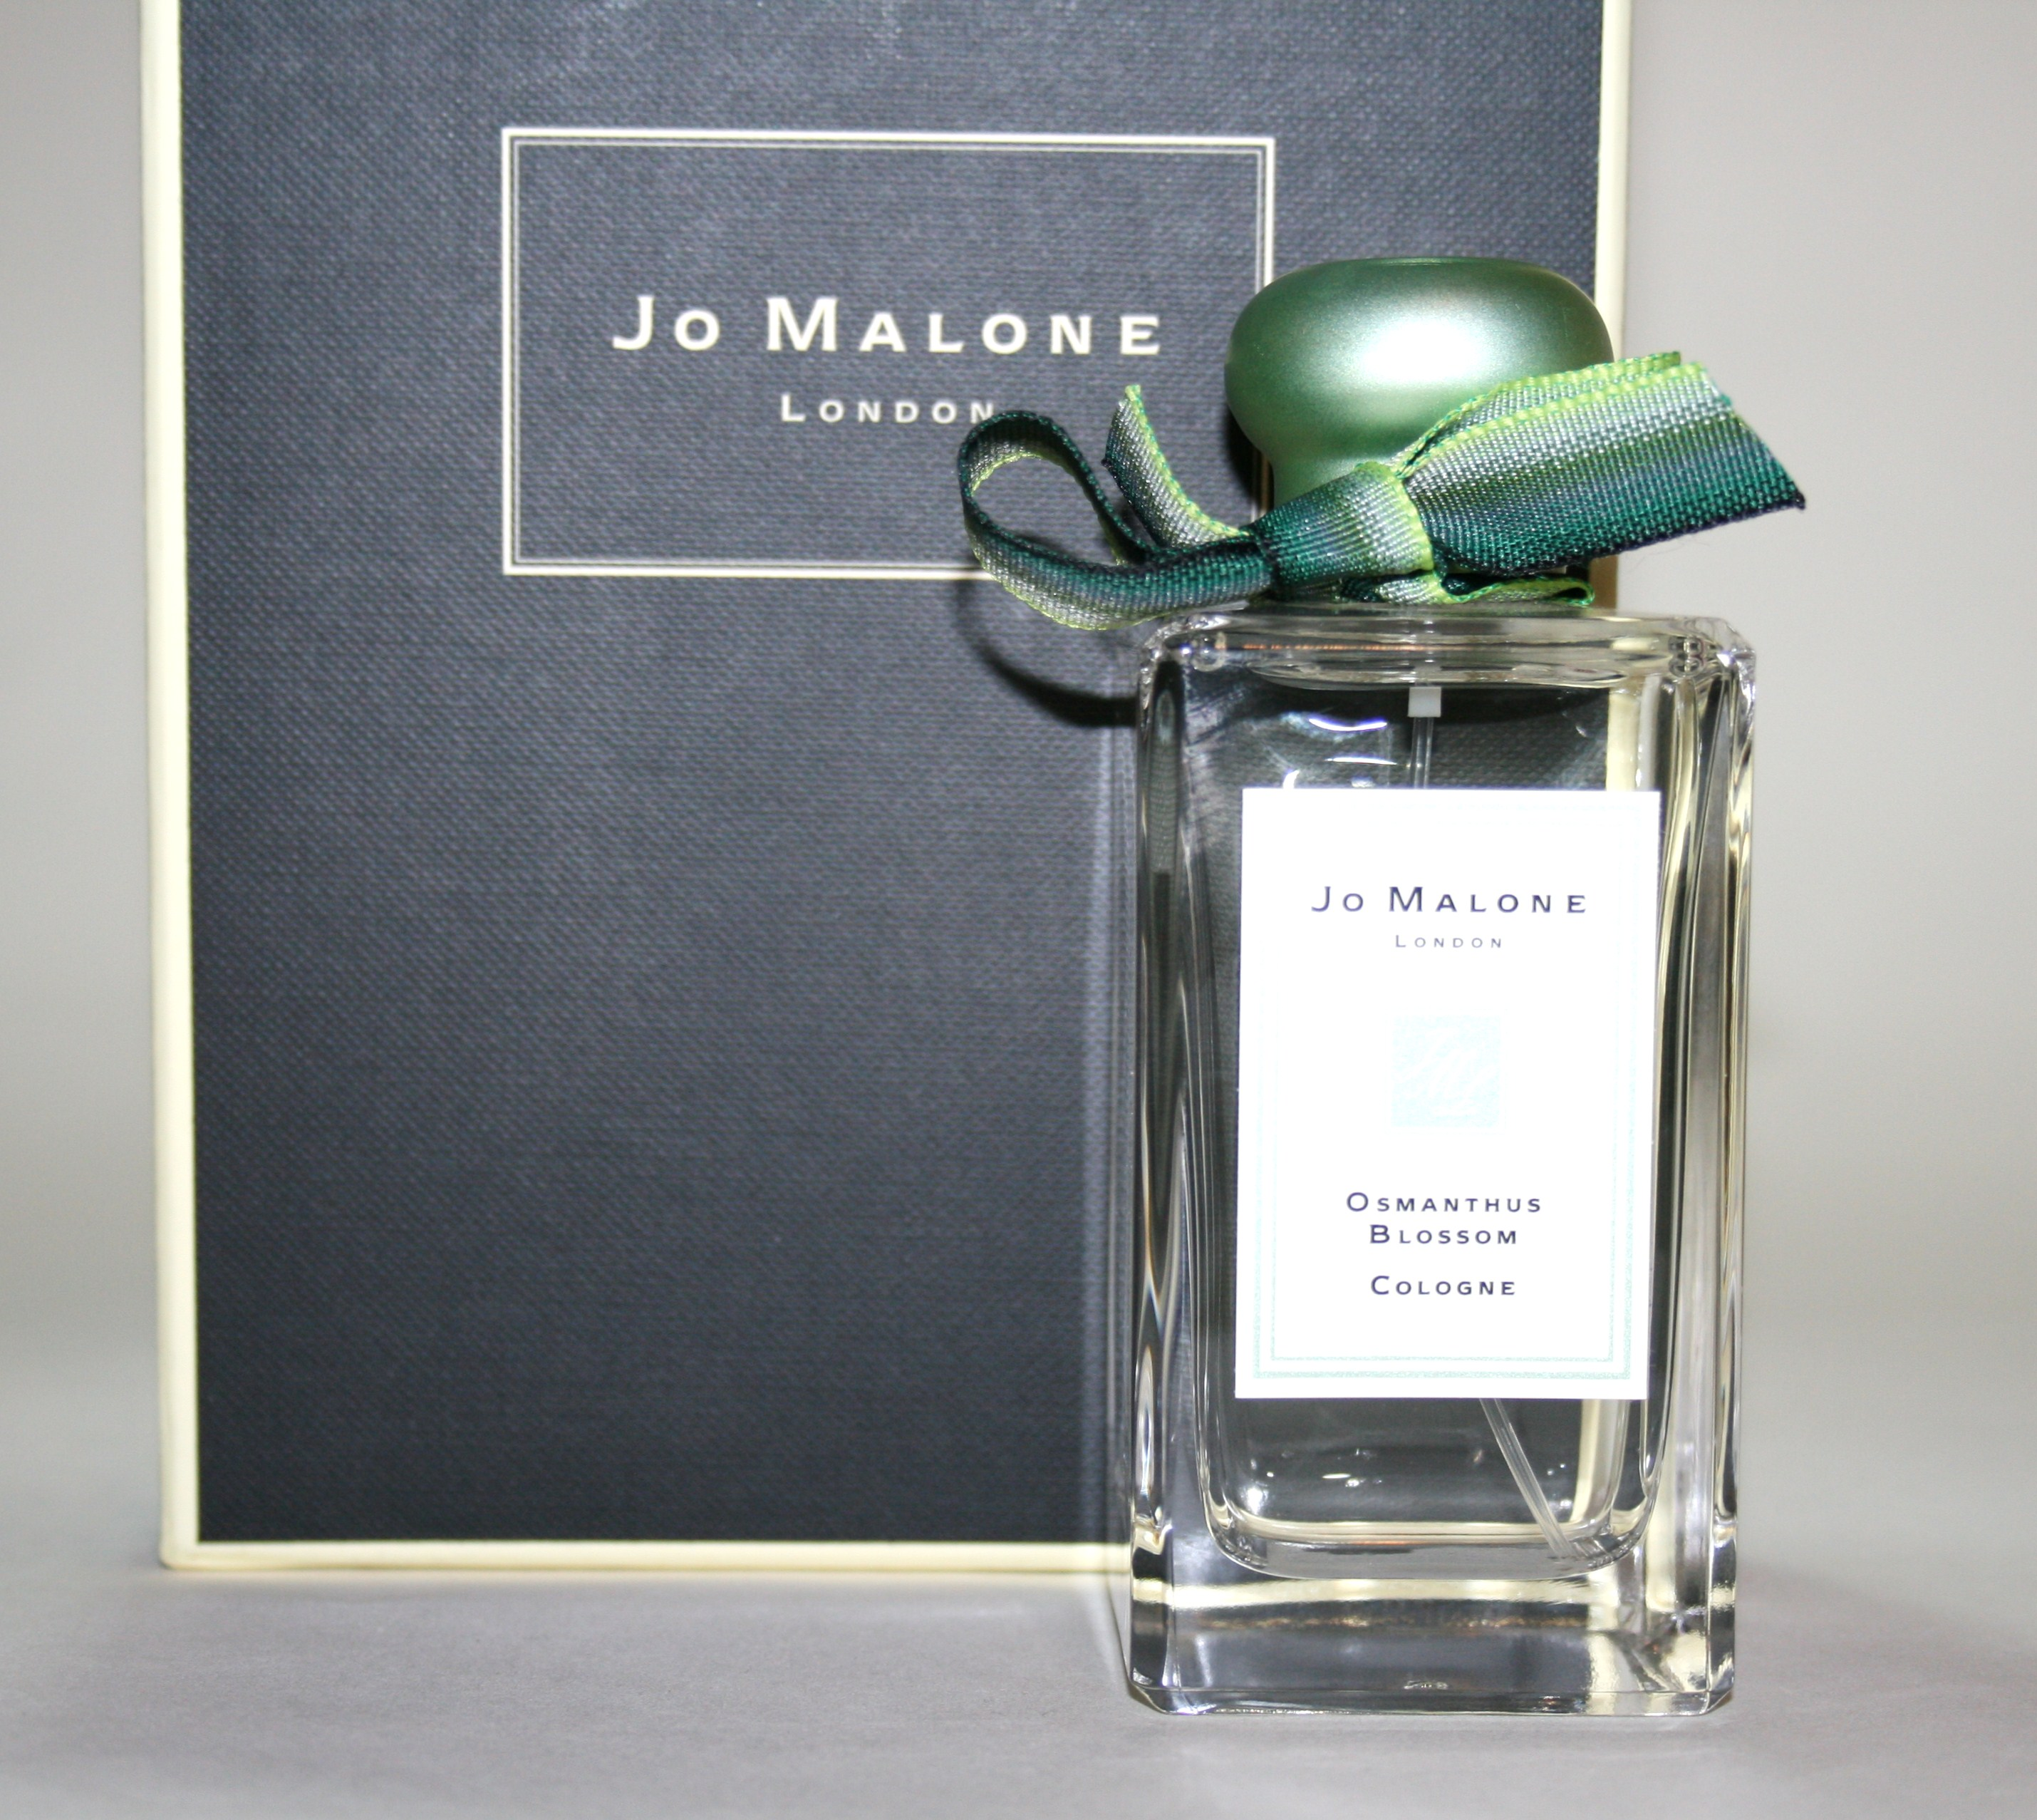 Jo Malone London Osmanthus Blossom Cologne